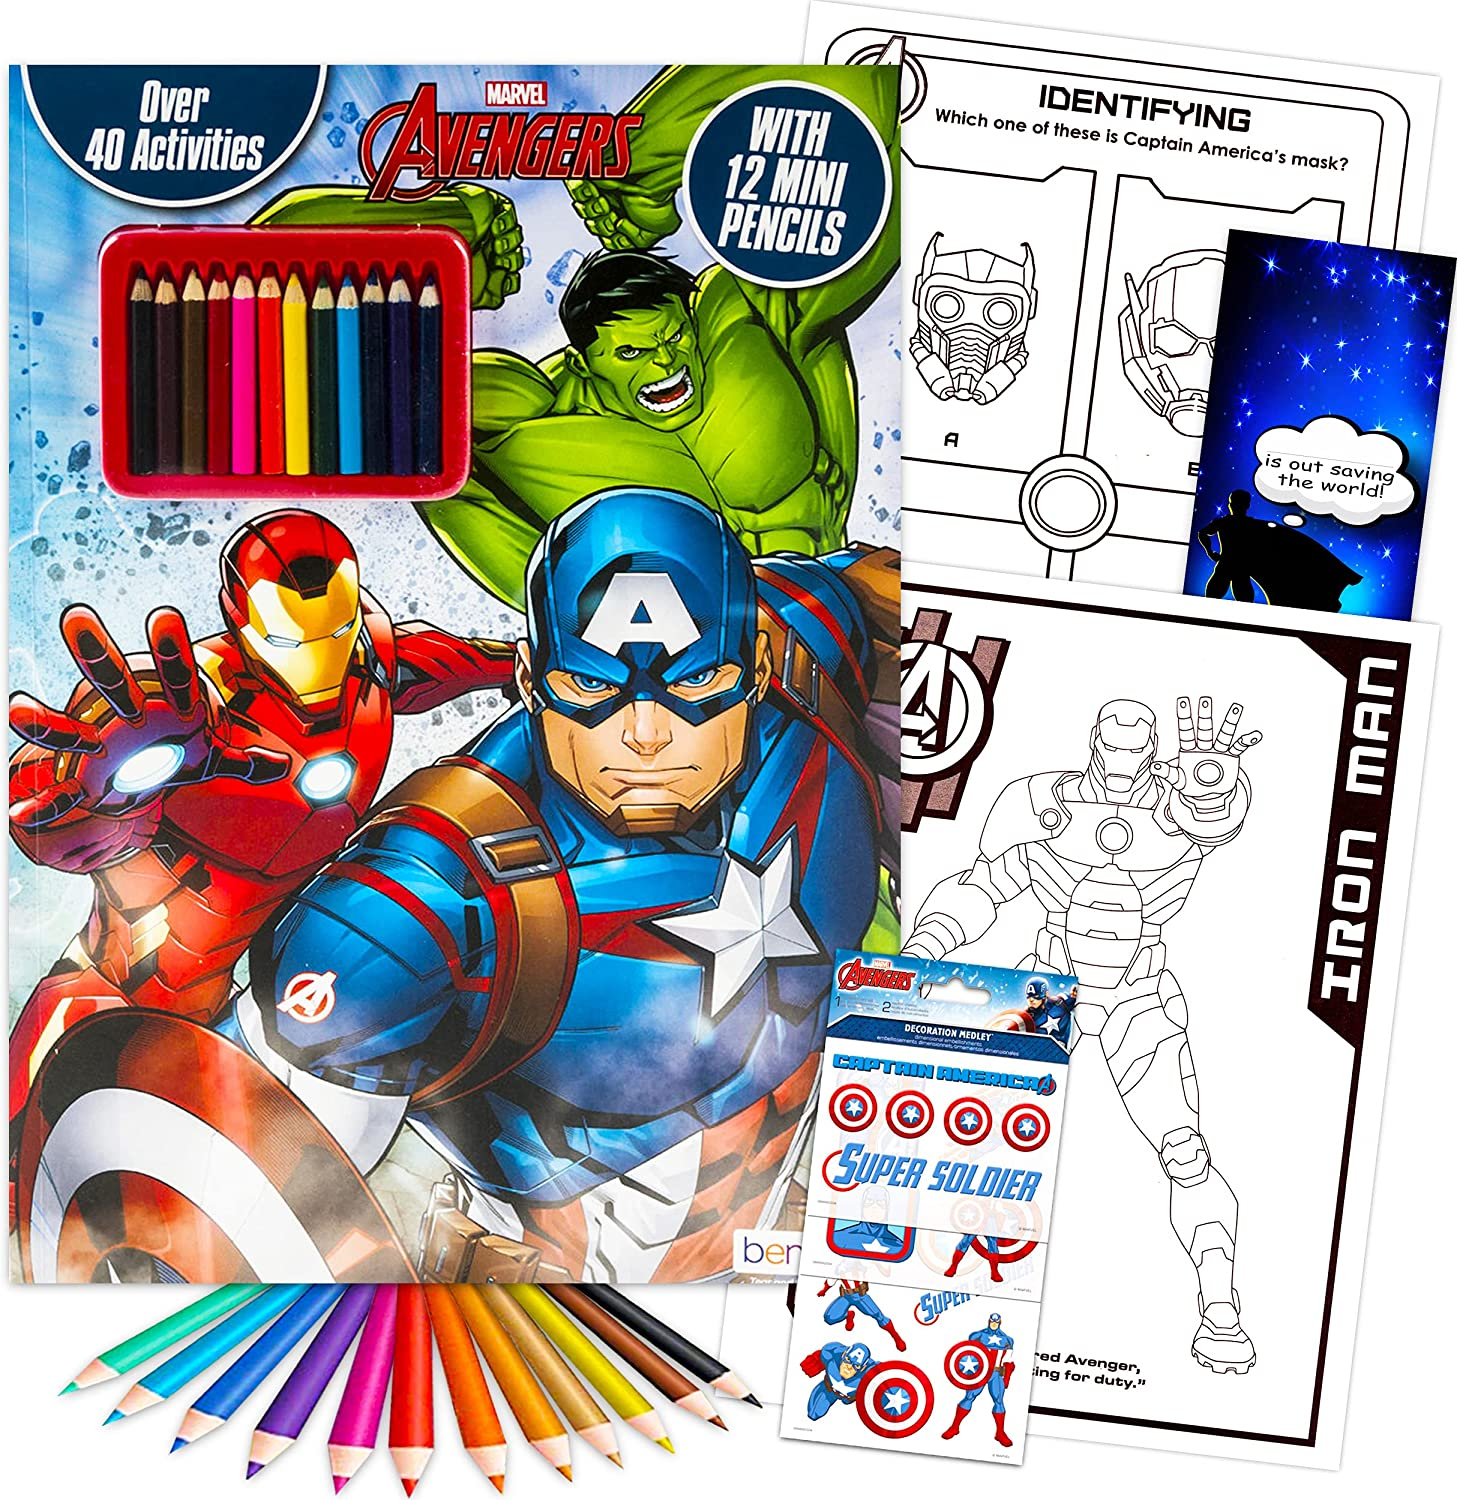 Marvel Avengers Activity Book Set Popular overseas with 3 Coloring ~ Mini Finally resale start Pencils